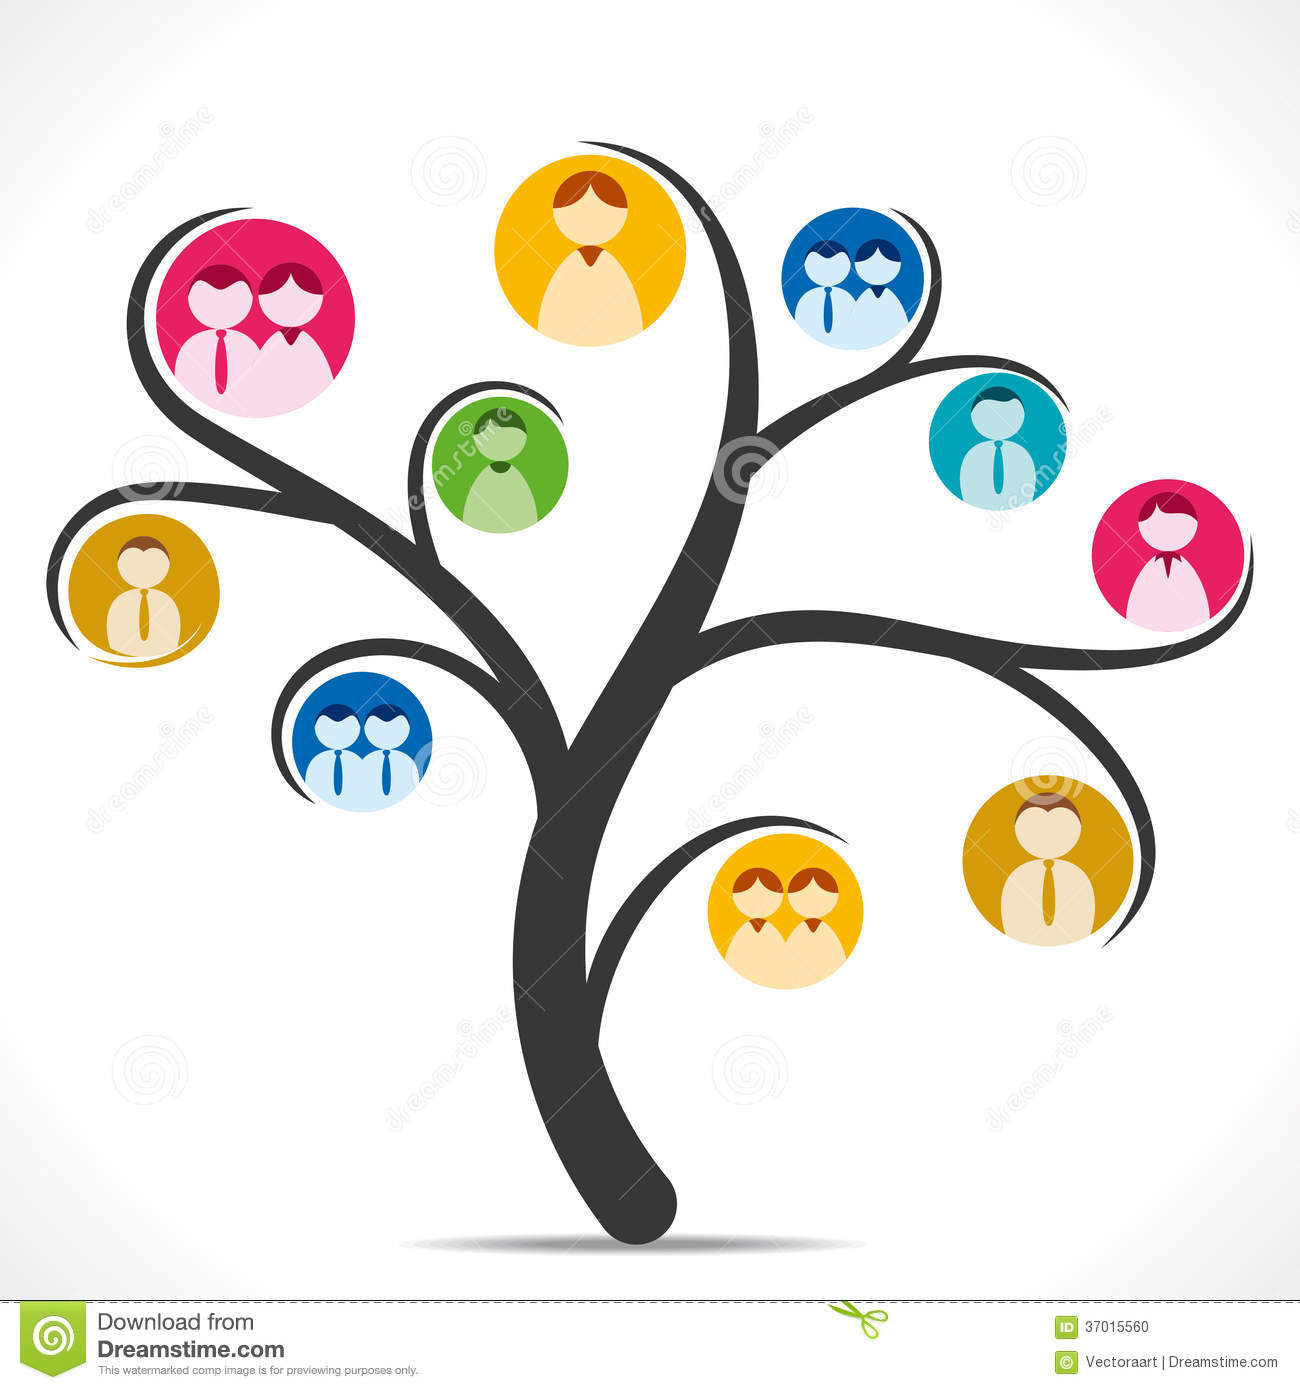 Social media tree stock vector. Image of earth, couple ...